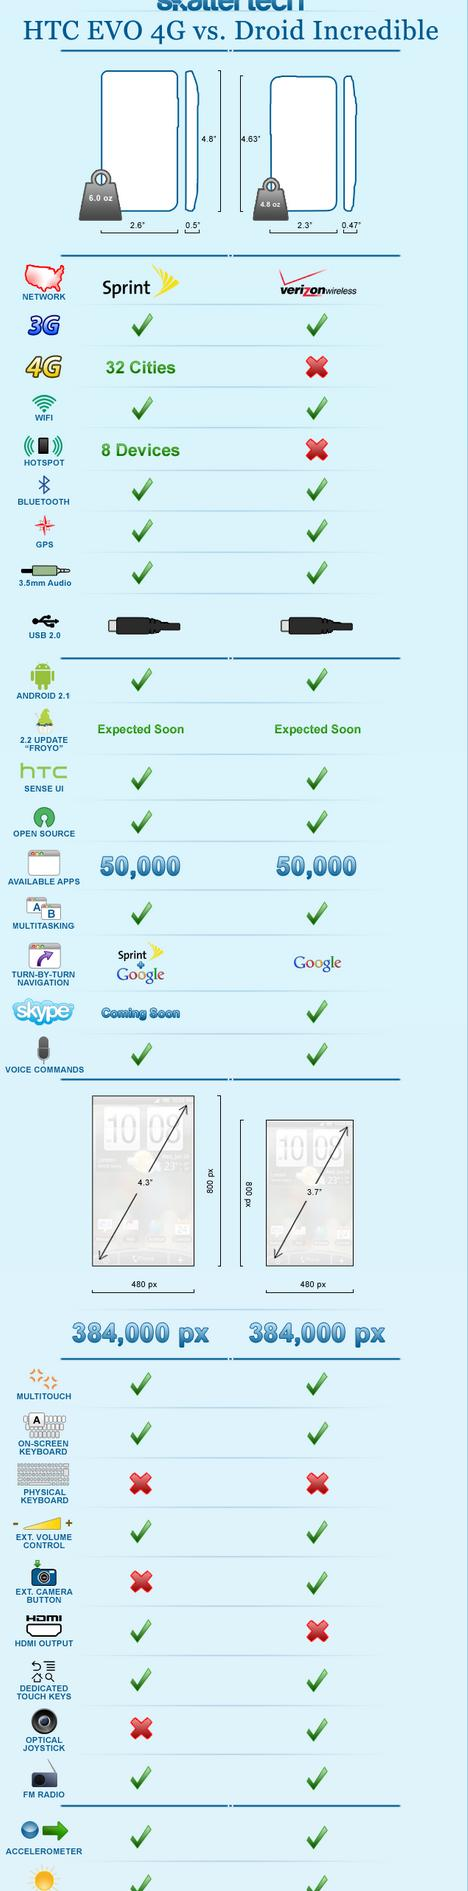 htc evo 4g vs droid incredible comparison chart infographic